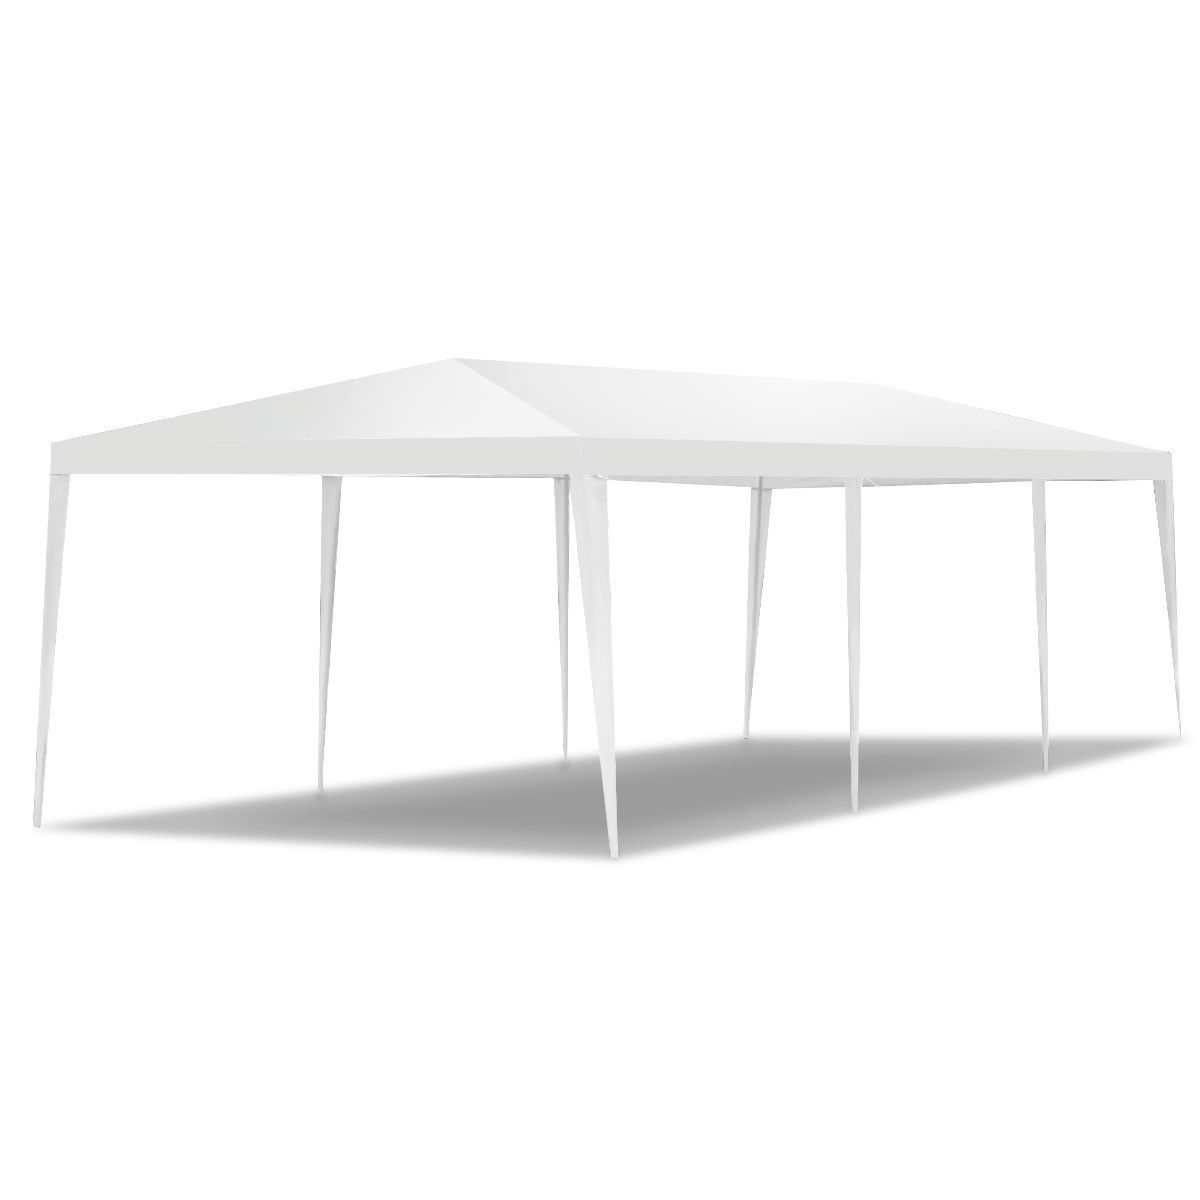 10 X 30 Outdoor Canopy Party Wedding Tent Color White Green Model 30 X10 Ft Three Side Wall Material Polyethyle Patio Tents Canopy Outdoor Canopy Tent